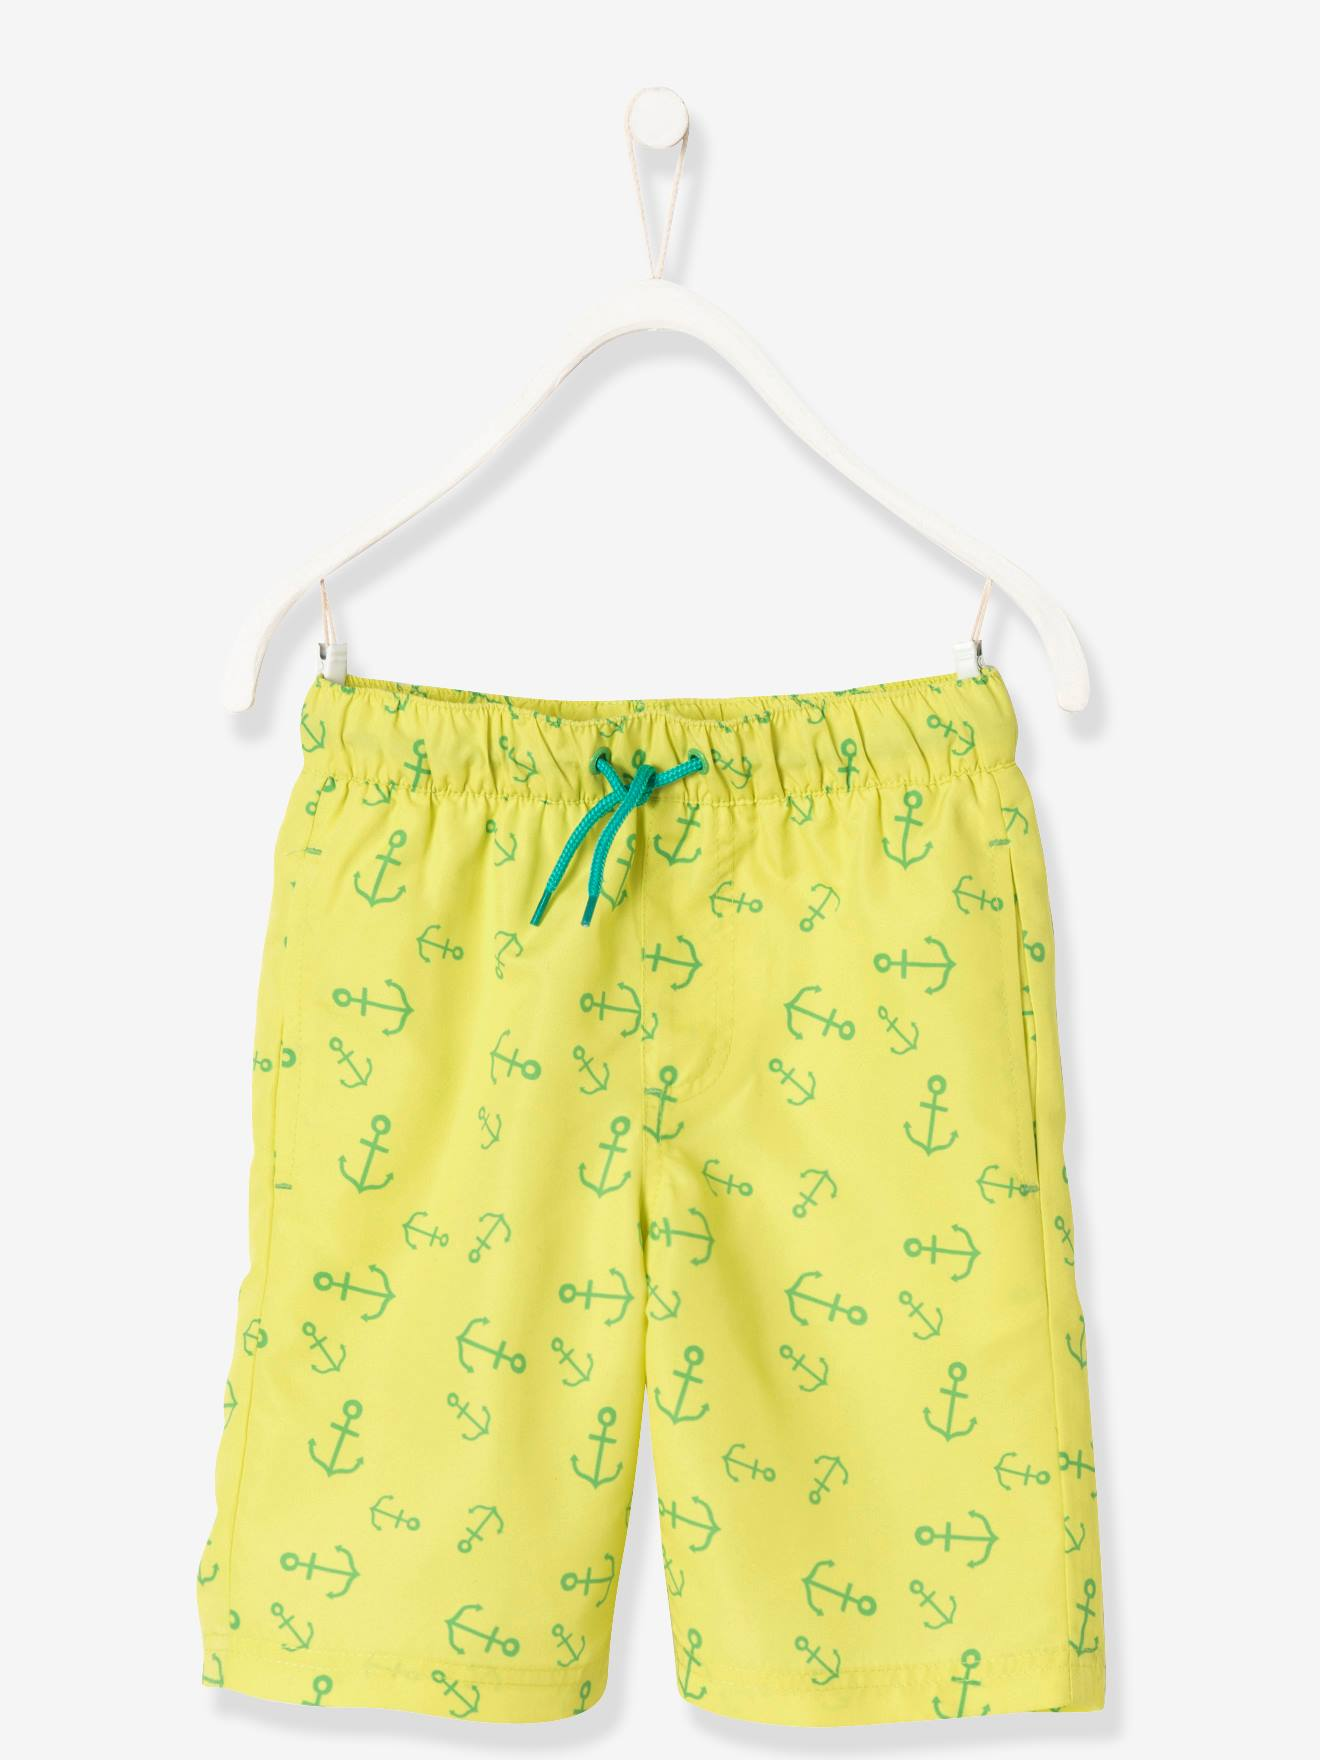 Baby & Toddler Clothing Adaptable Baby Swmmimg Shorts Big Clearance Sale Clothing, Shoes & Accessories